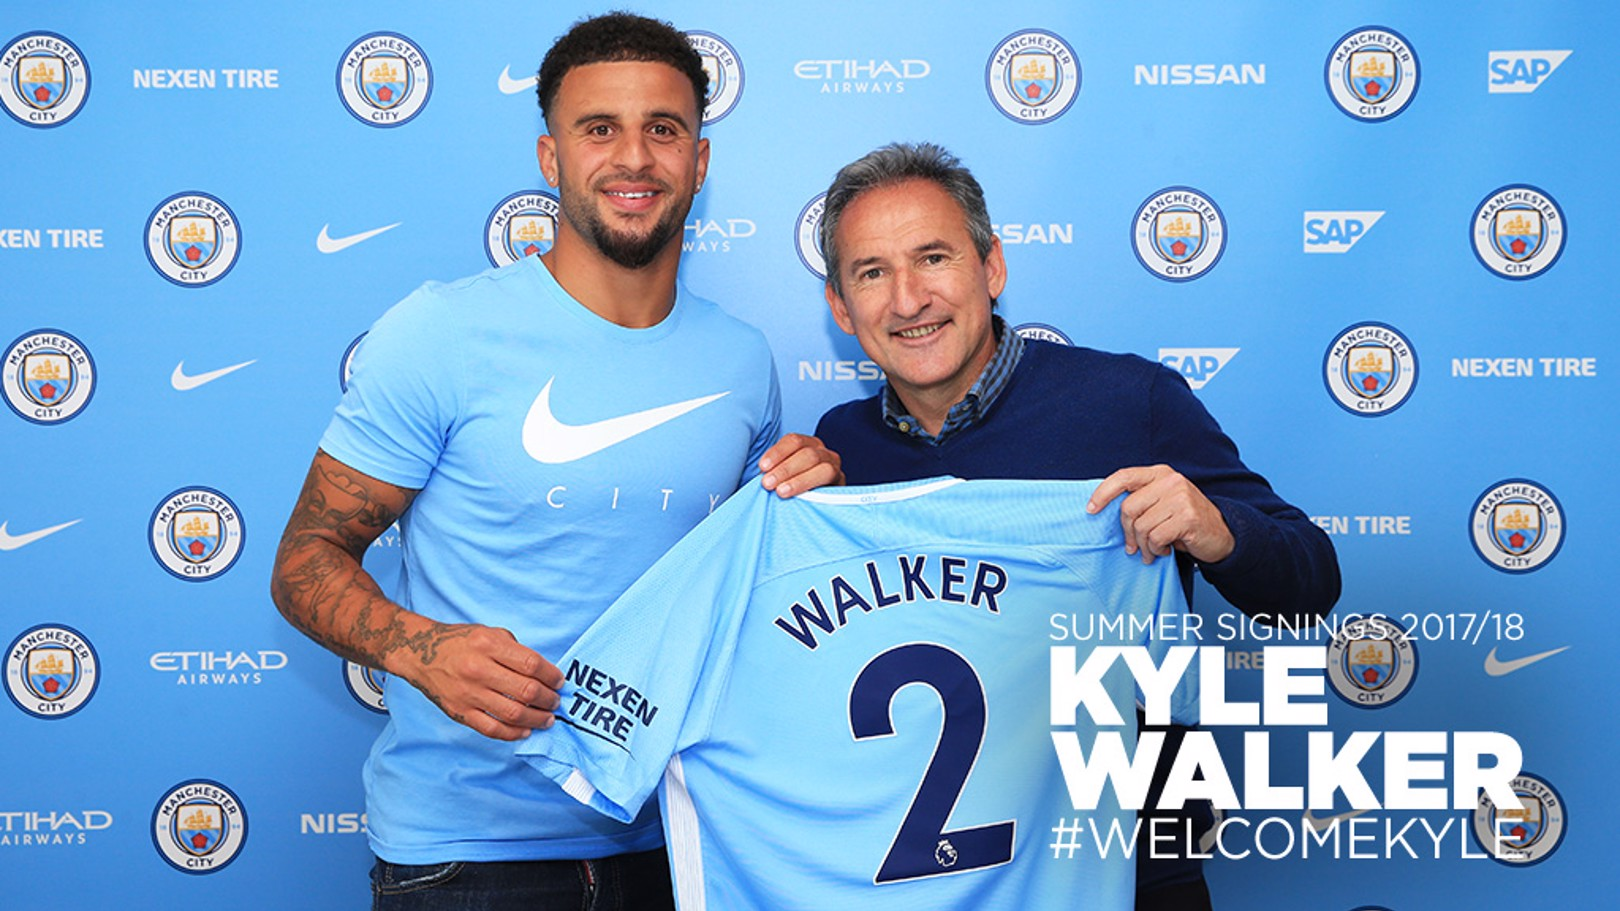 Kyle Walker joins City on five-year deal